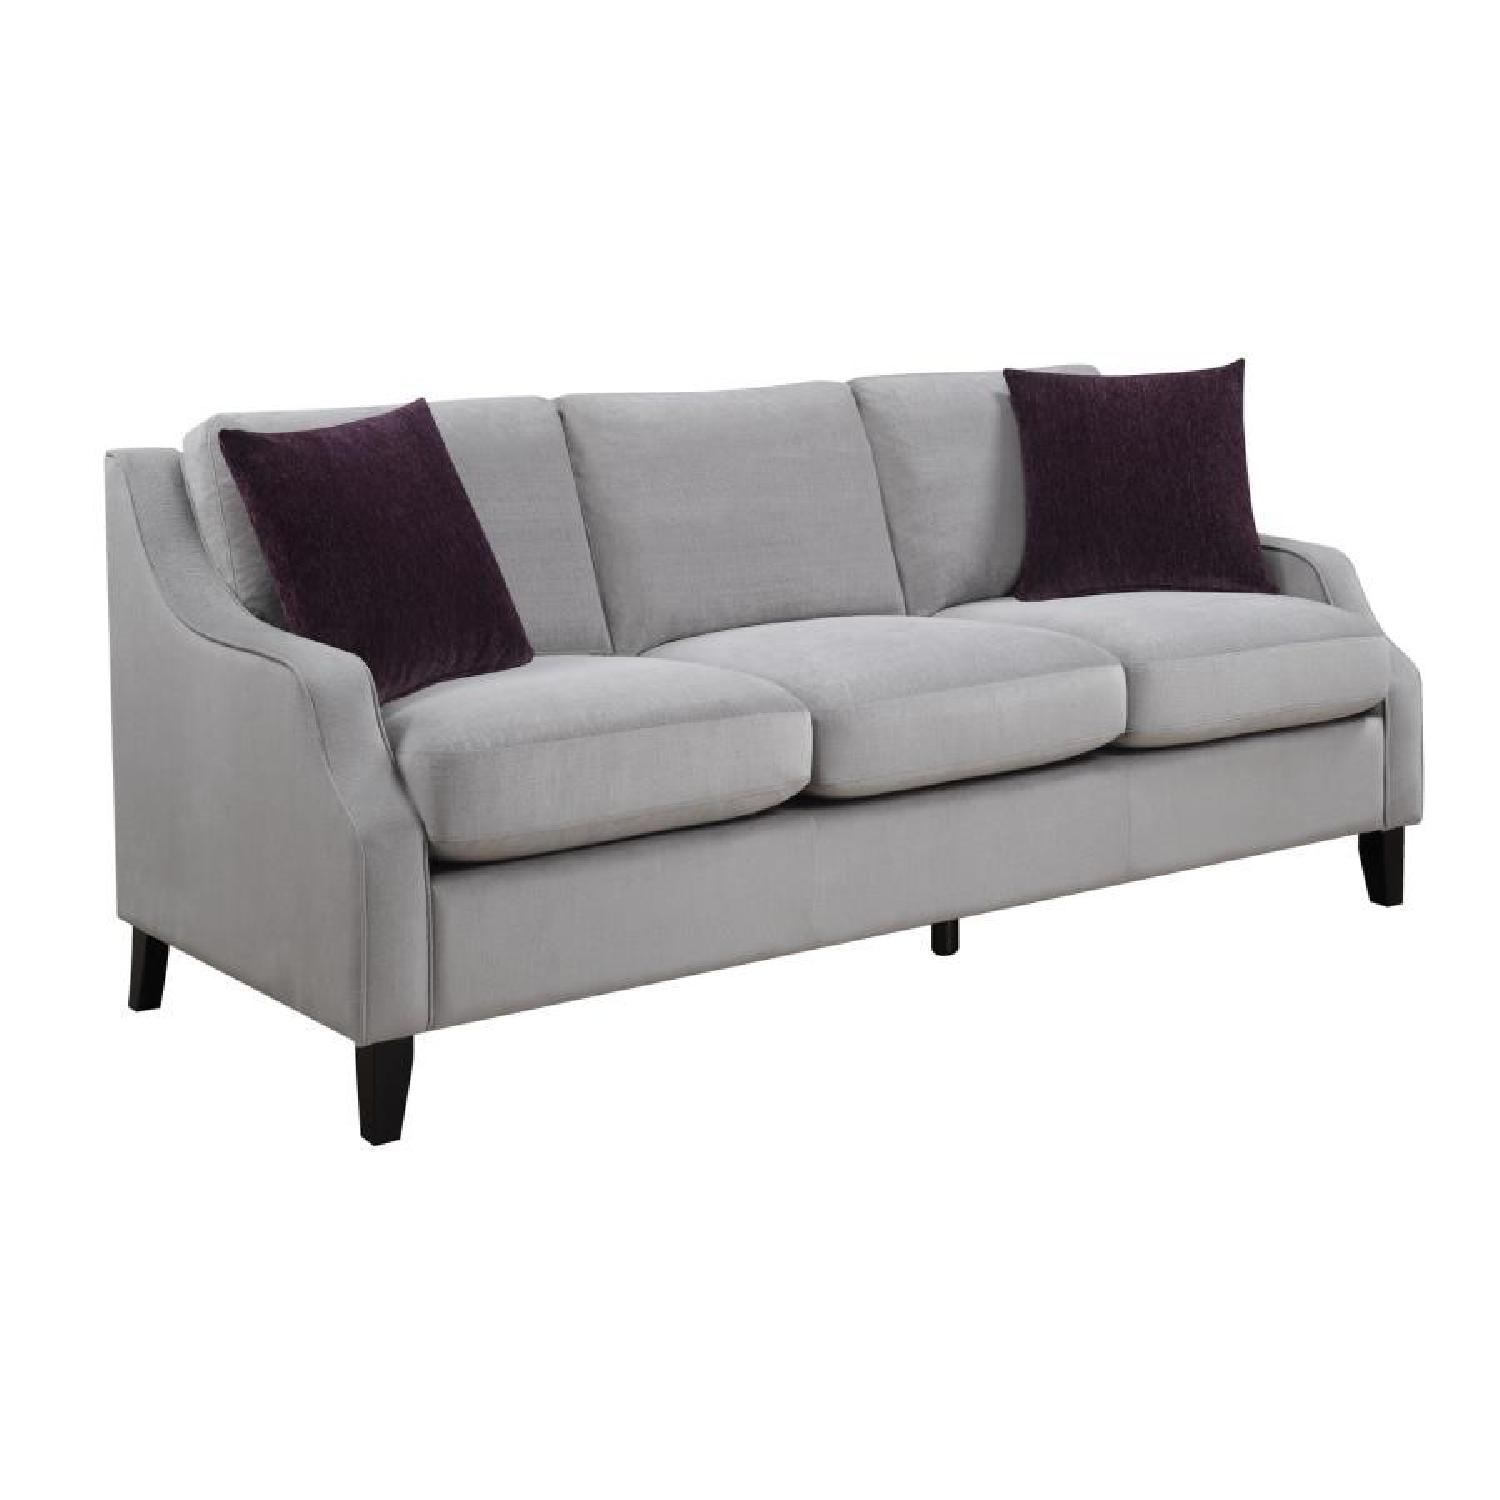 Premium Plush Fabric Tailored Silhouette Sofa w/ Feather Dow